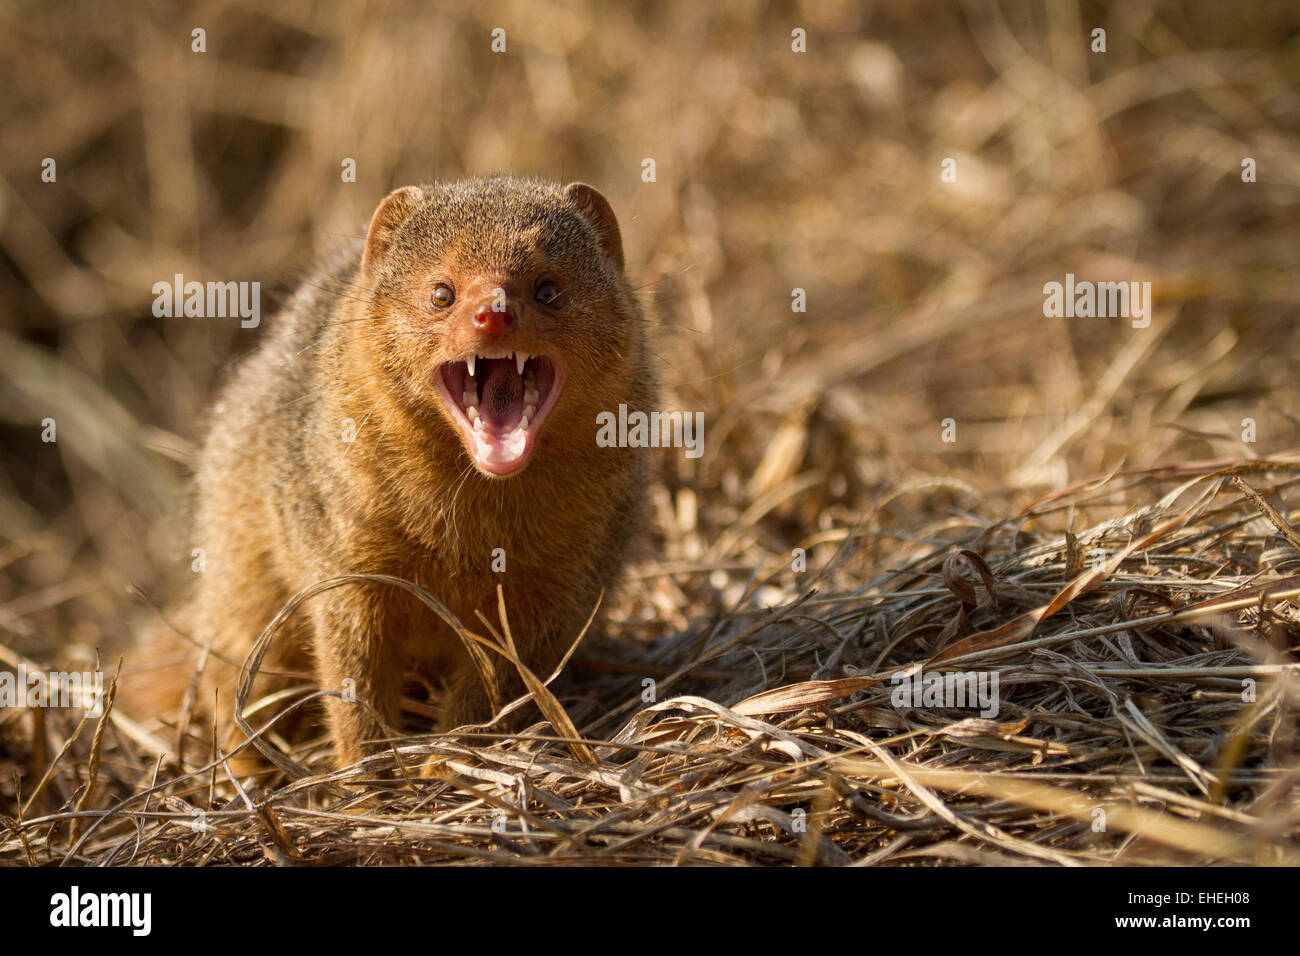 Common dwarf mongoose (Helogale parvula) snarling - Stock Image